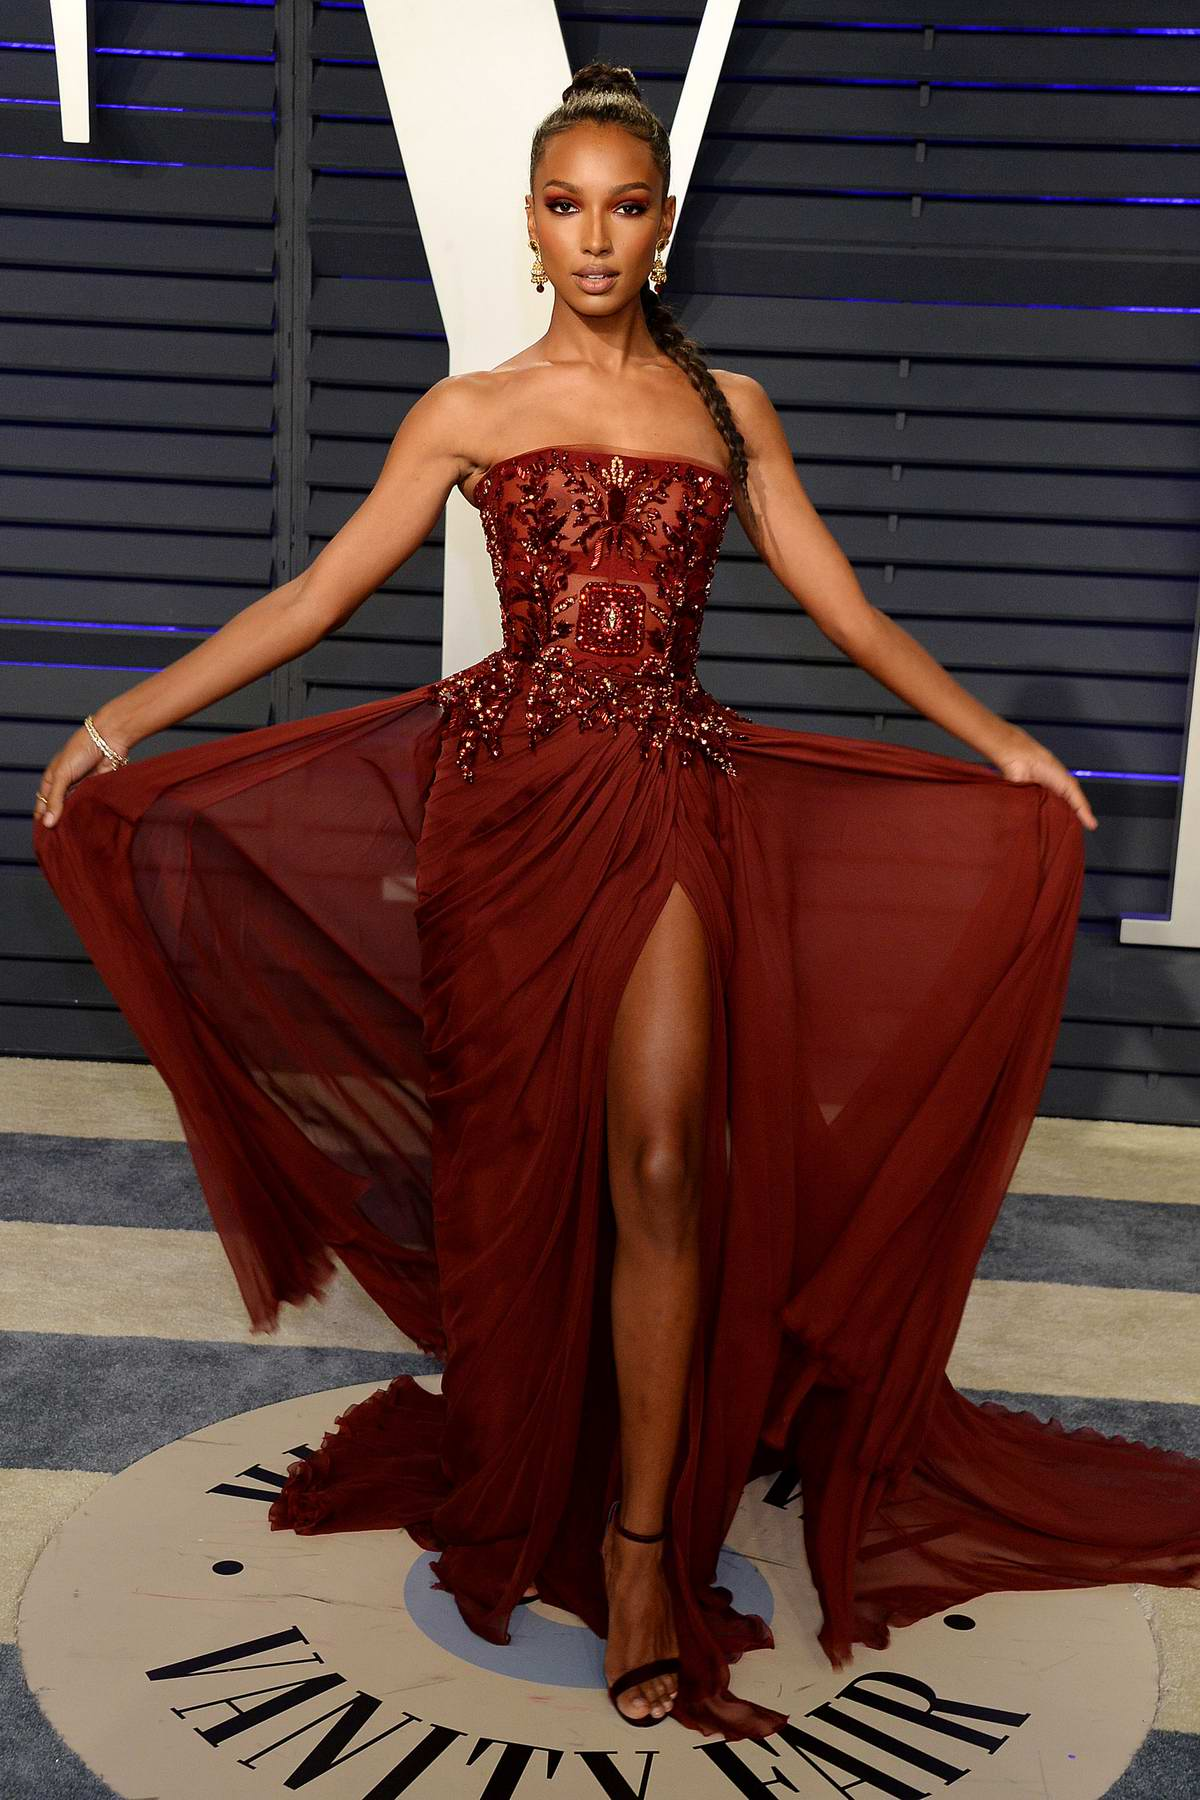 Jasmine Tookes attends the Vanity Fair Oscar Party at Wallis Annenberg Center for the Performing Arts in Beverly Hills, California